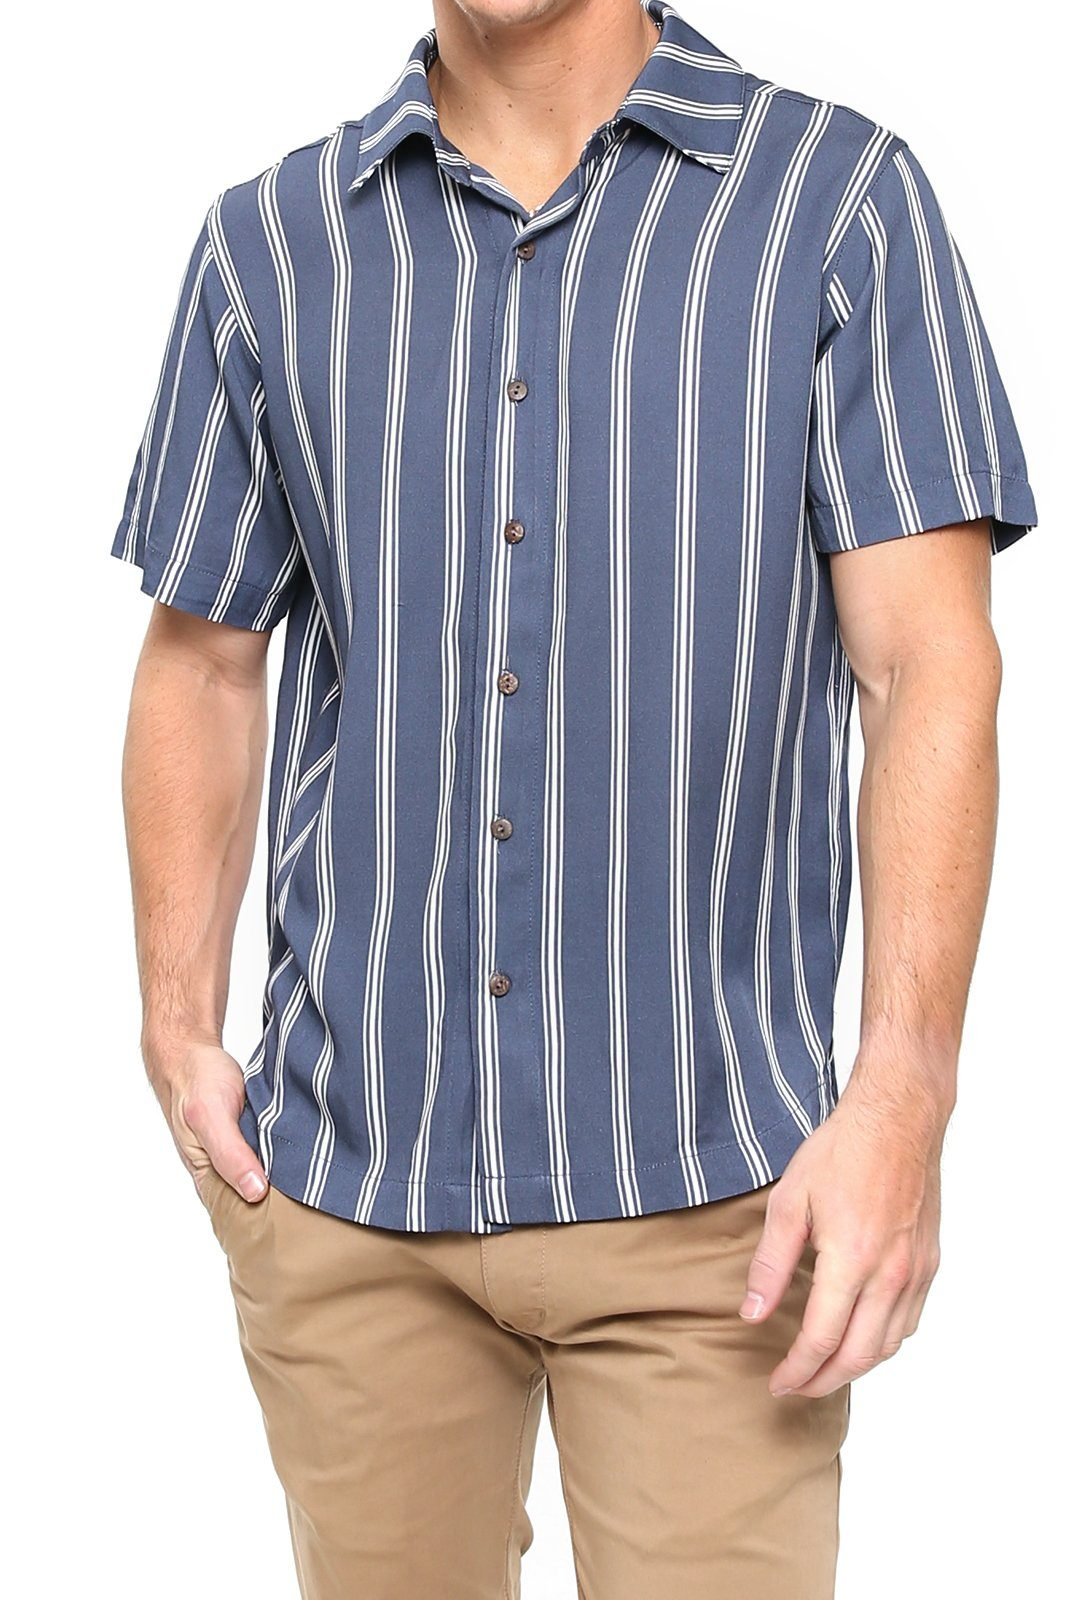 Shore Men's Camp Shirt - Navy Stripe - Shore